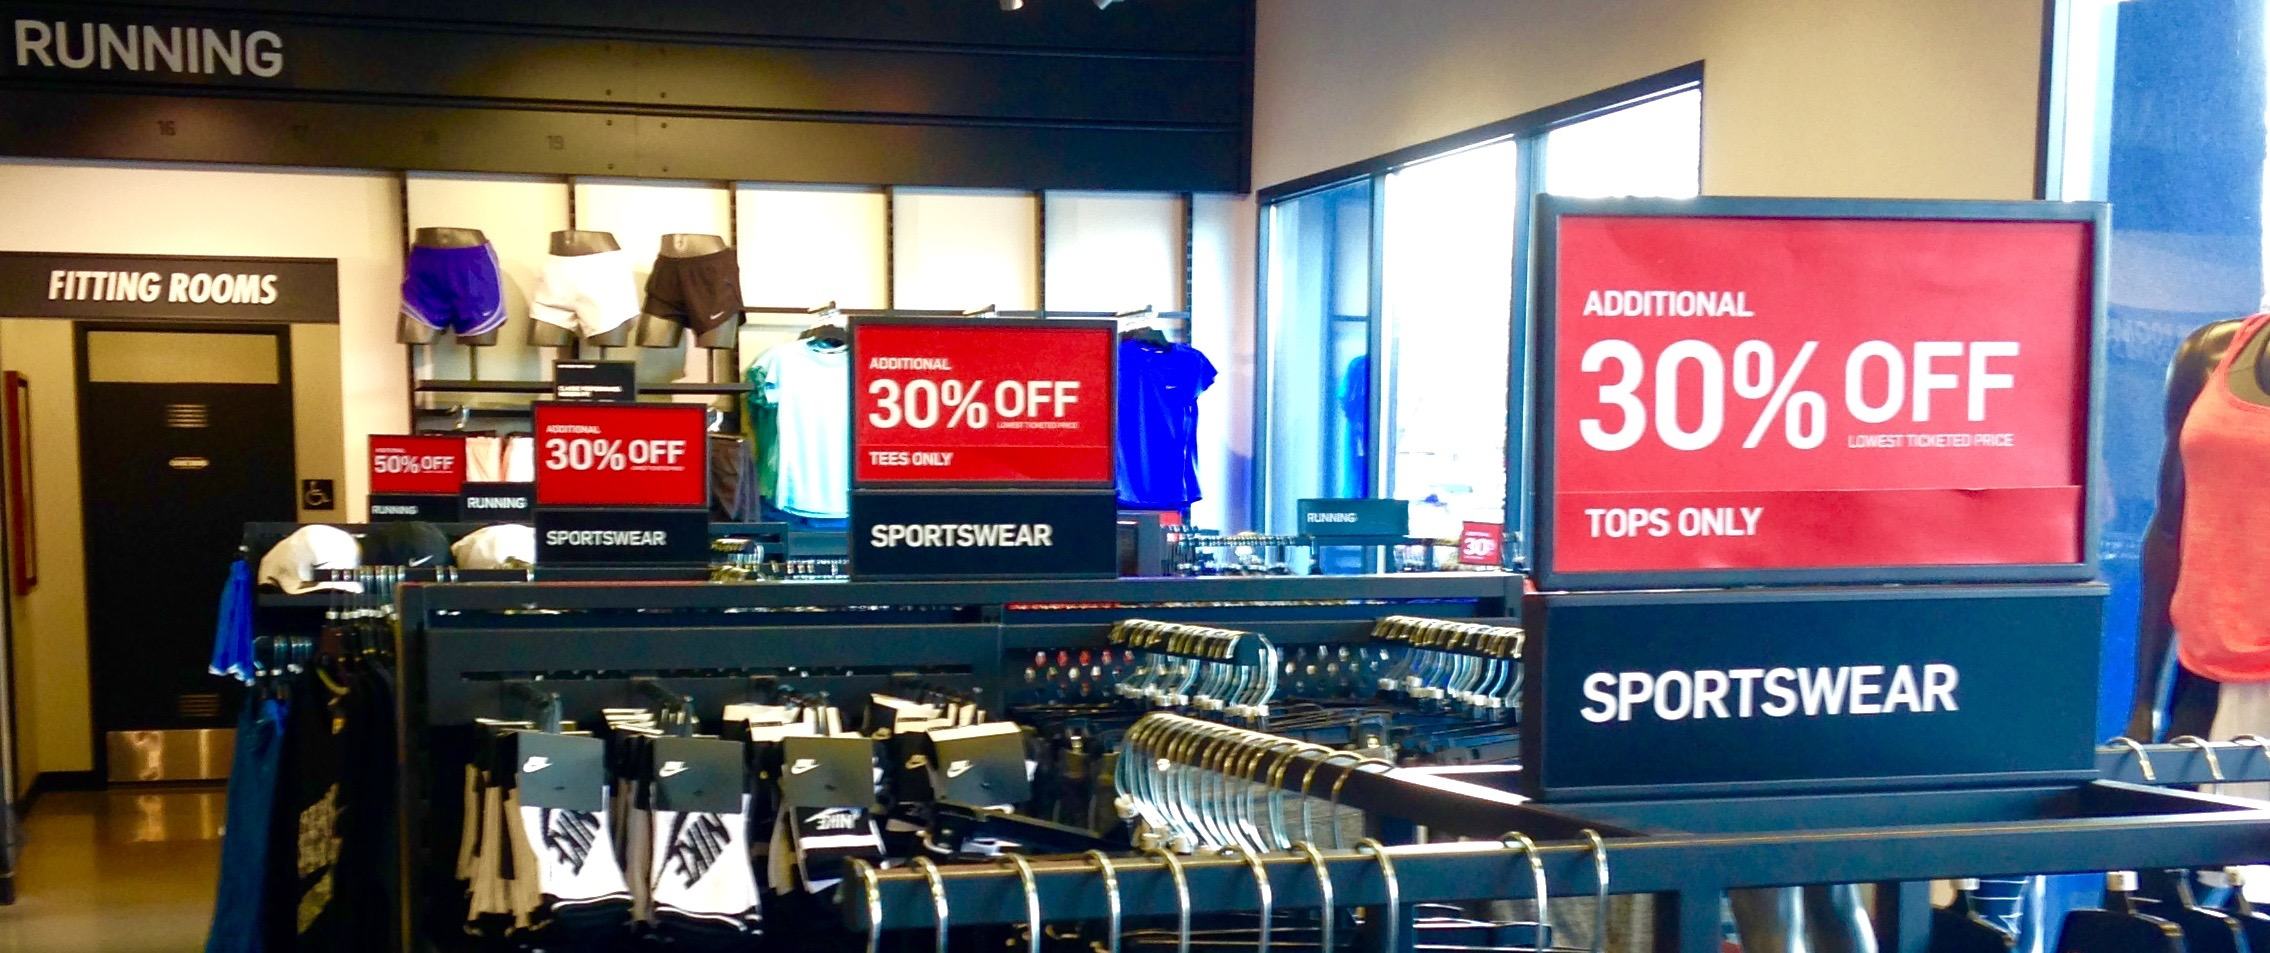 Look for the racks with these red signs, they contain the best deals at the Nike Factory Store. (Apologies for the low quality photo.)